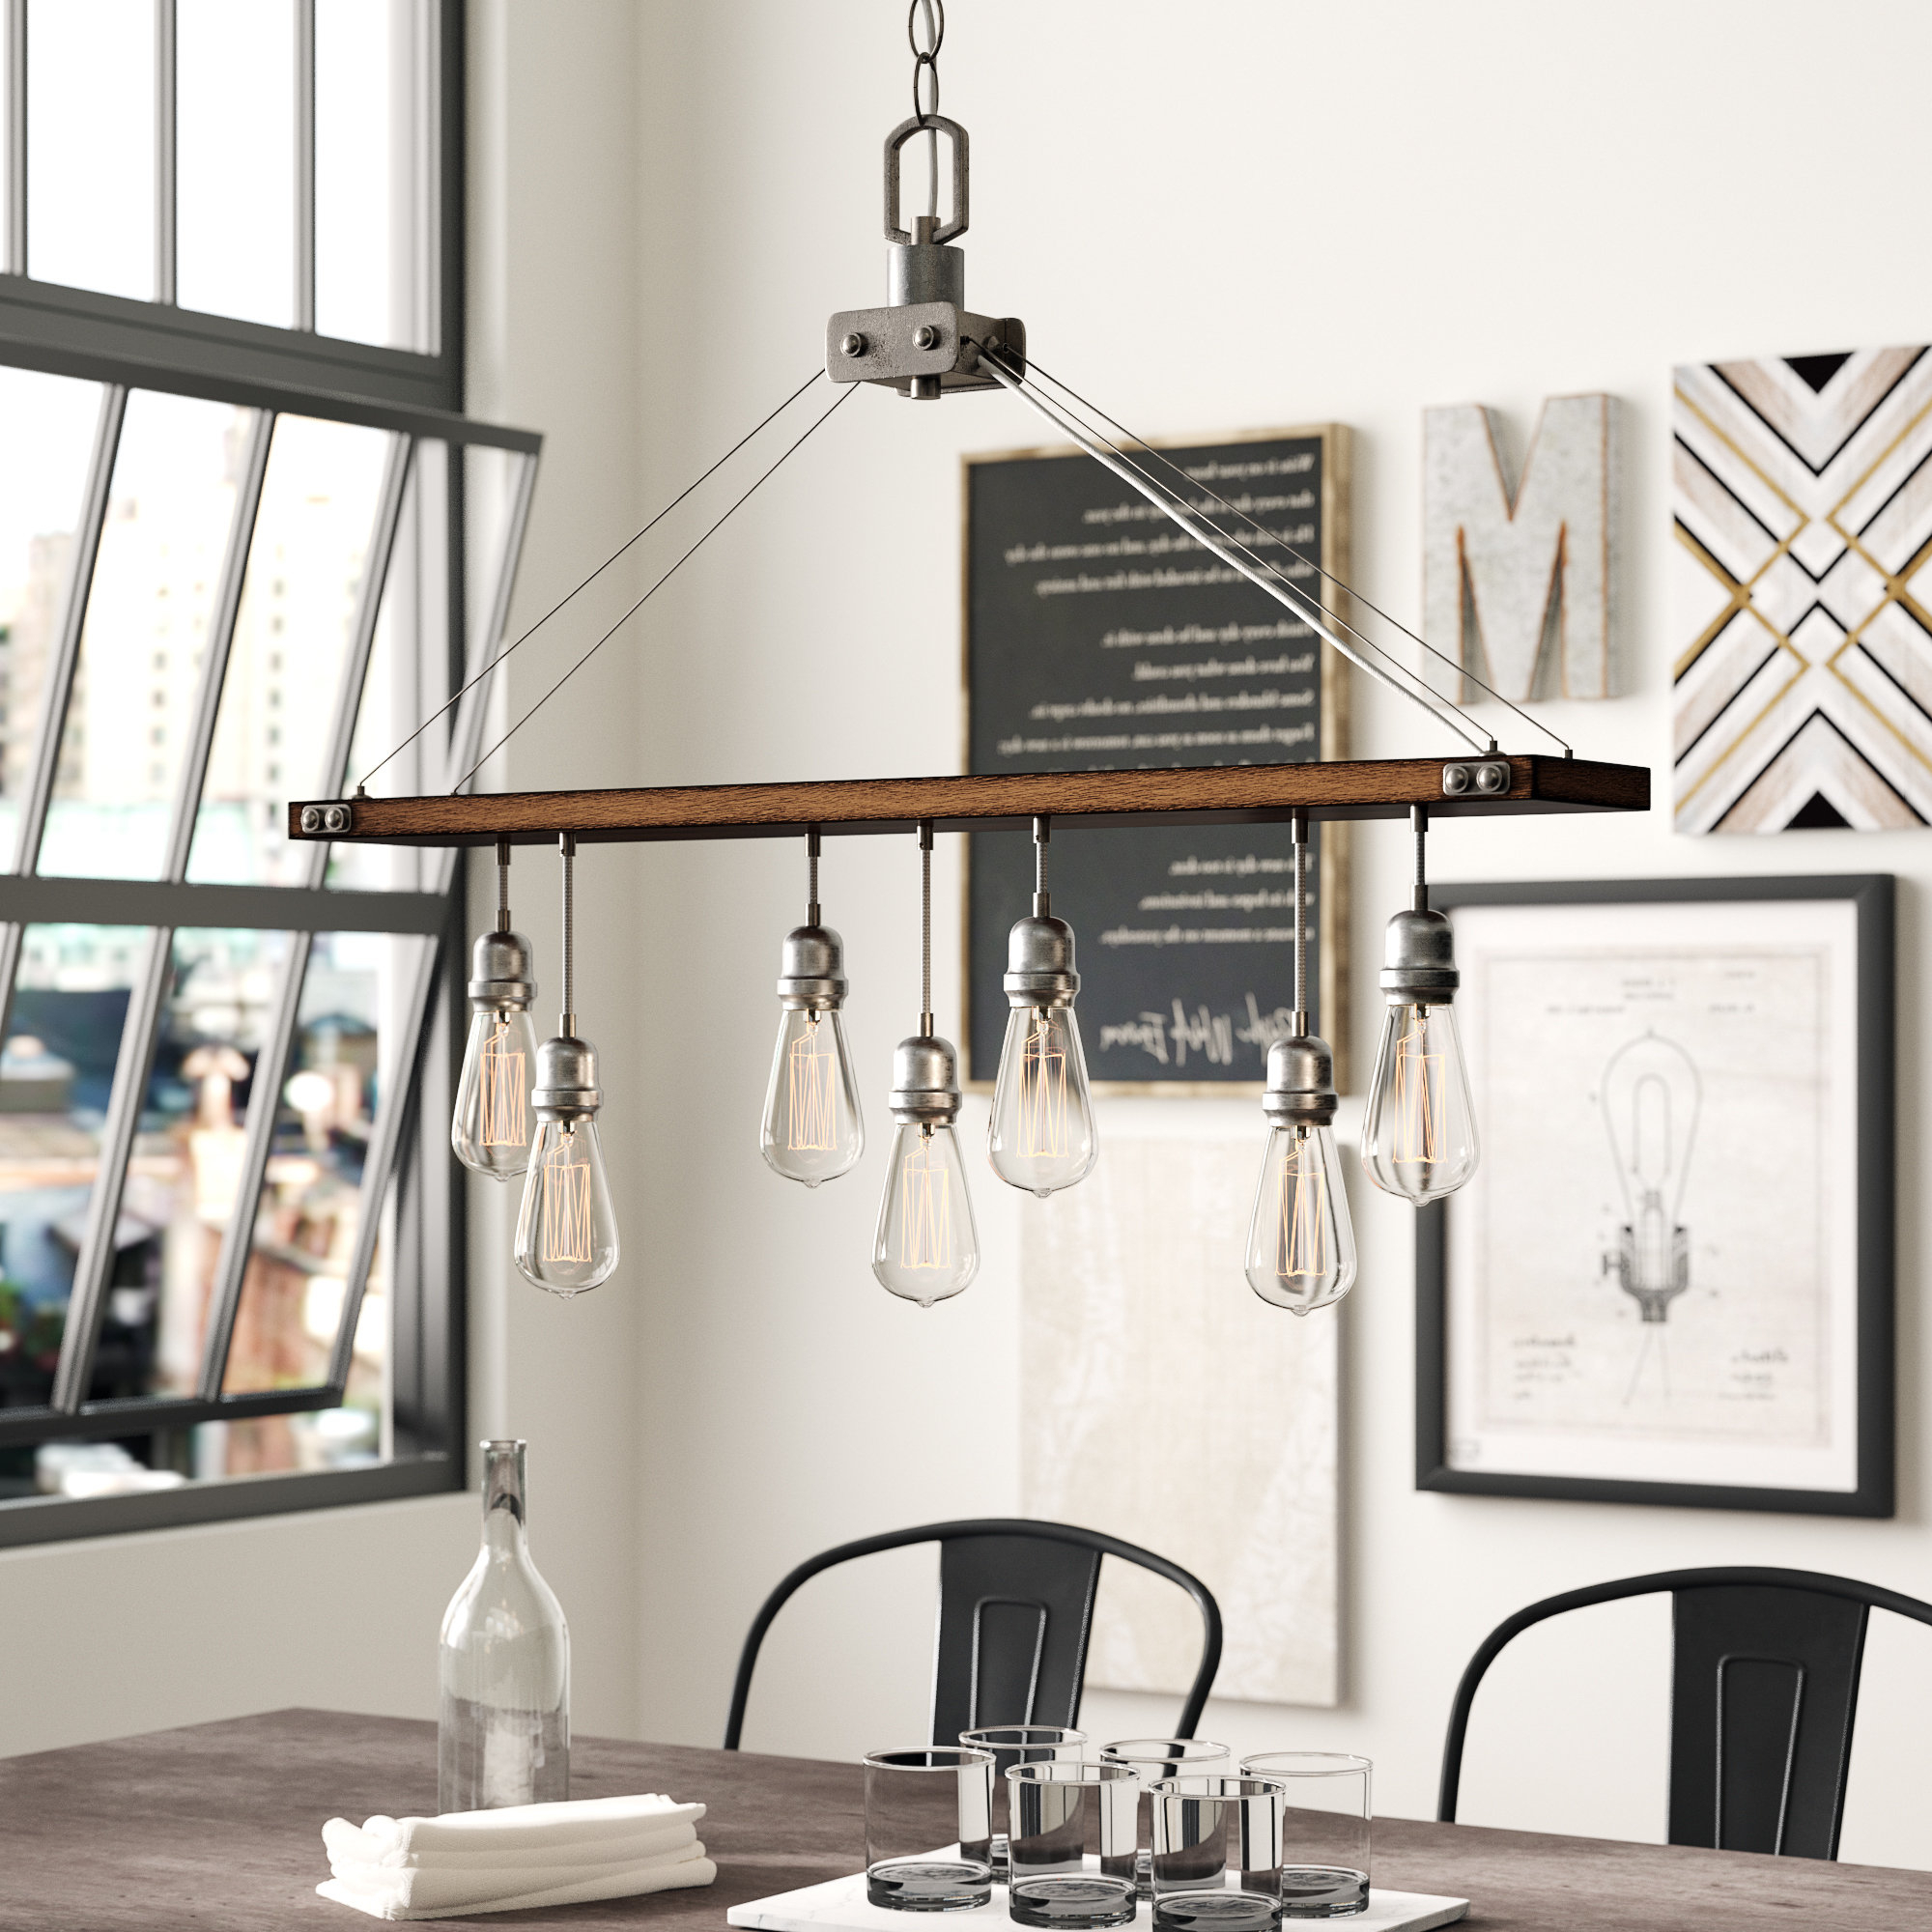 [%Square & Rectangular Chandeliers Sale – Up To 65% Off Until Inside Well Liked Hewitt 4 Light Square Chandeliers|Hewitt 4 Light Square Chandeliers With Popular Square & Rectangular Chandeliers Sale – Up To 65% Off Until|2020 Hewitt 4 Light Square Chandeliers With Square & Rectangular Chandeliers Sale – Up To 65% Off Until|Preferred Square & Rectangular Chandeliers Sale – Up To 65% Off Until In Hewitt 4 Light Square Chandeliers%] (View 10 of 25)